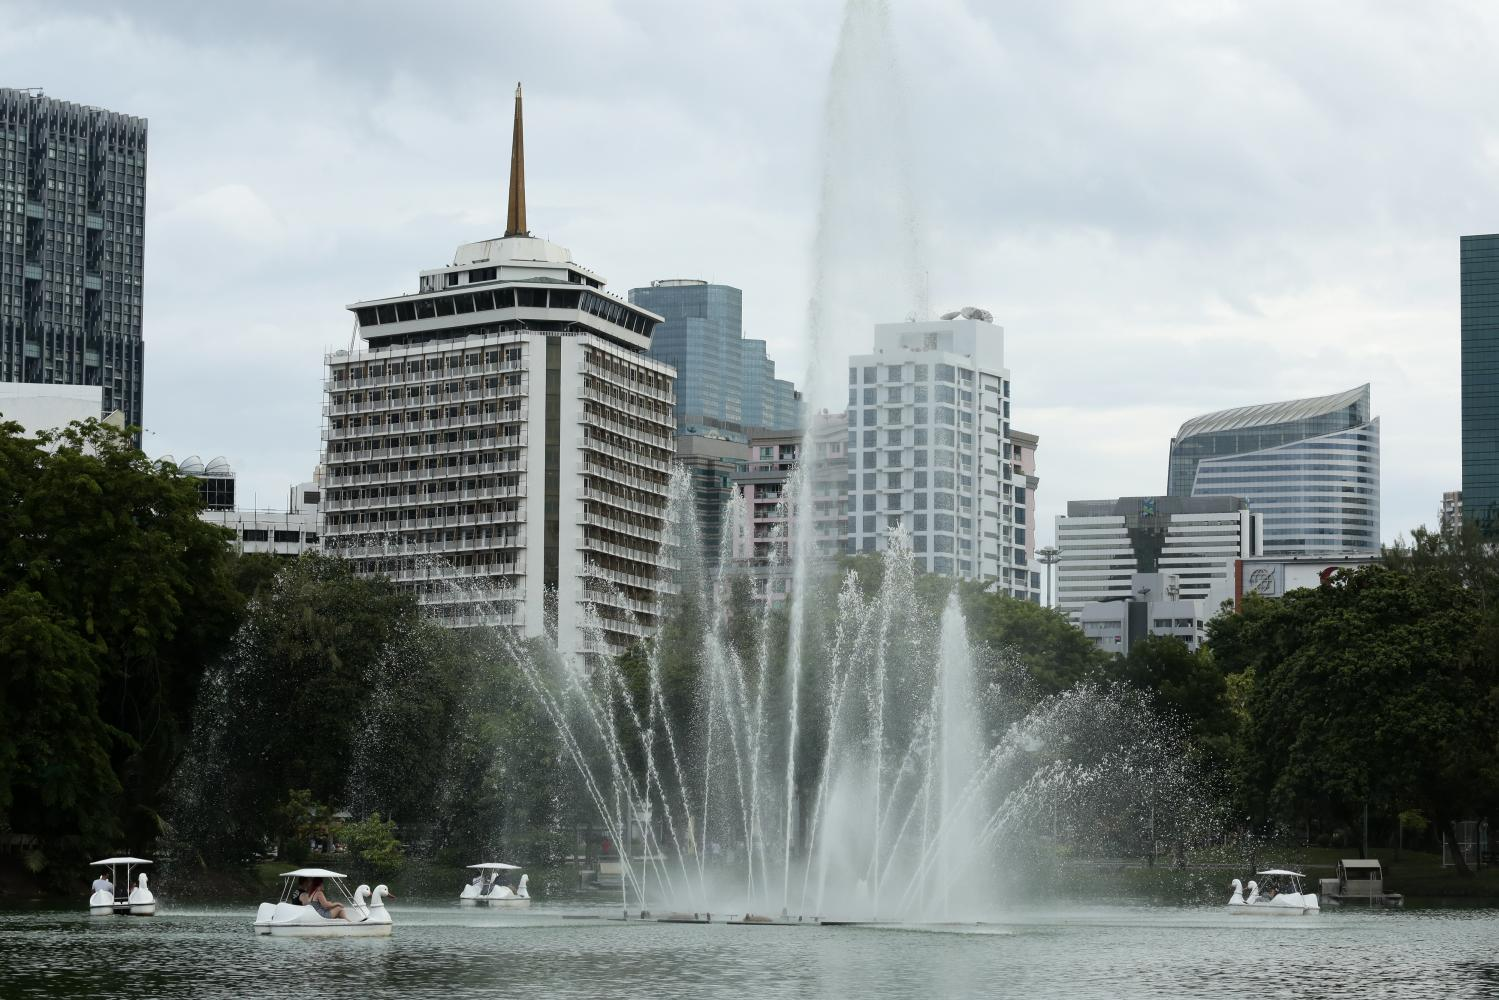 ROMANCE IN THE WATER: The iconic fountain of Lumpini Park. Visitors get some legwork as they ride duck-paddle boats around the lake.